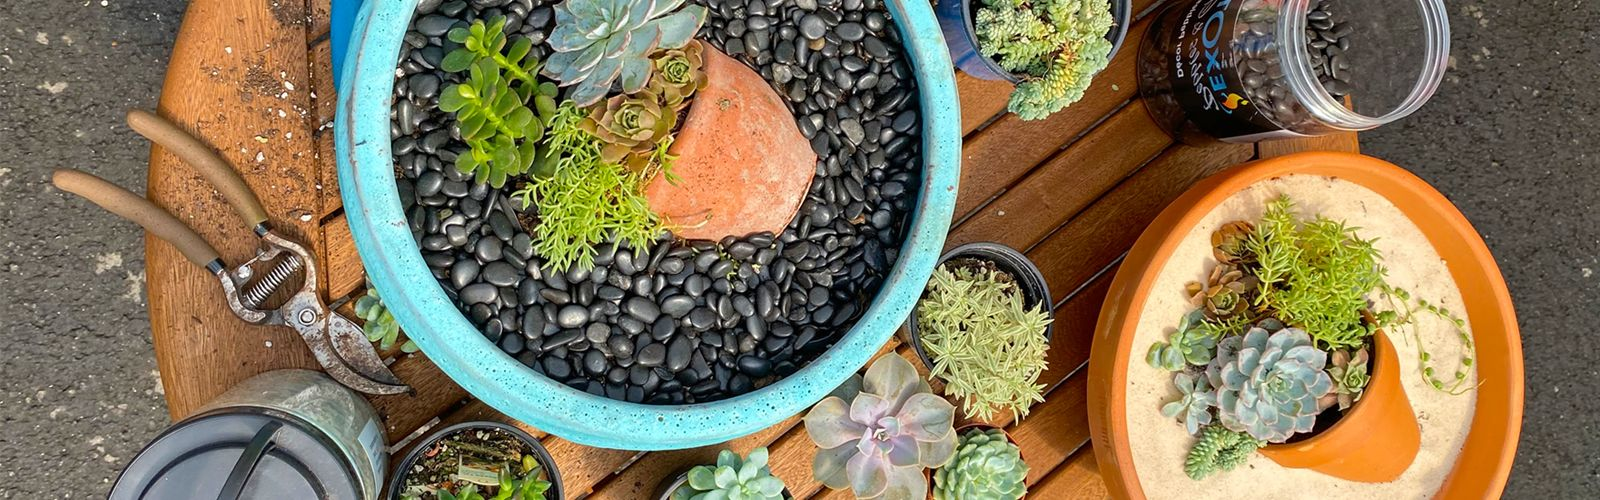 Succulents within pots